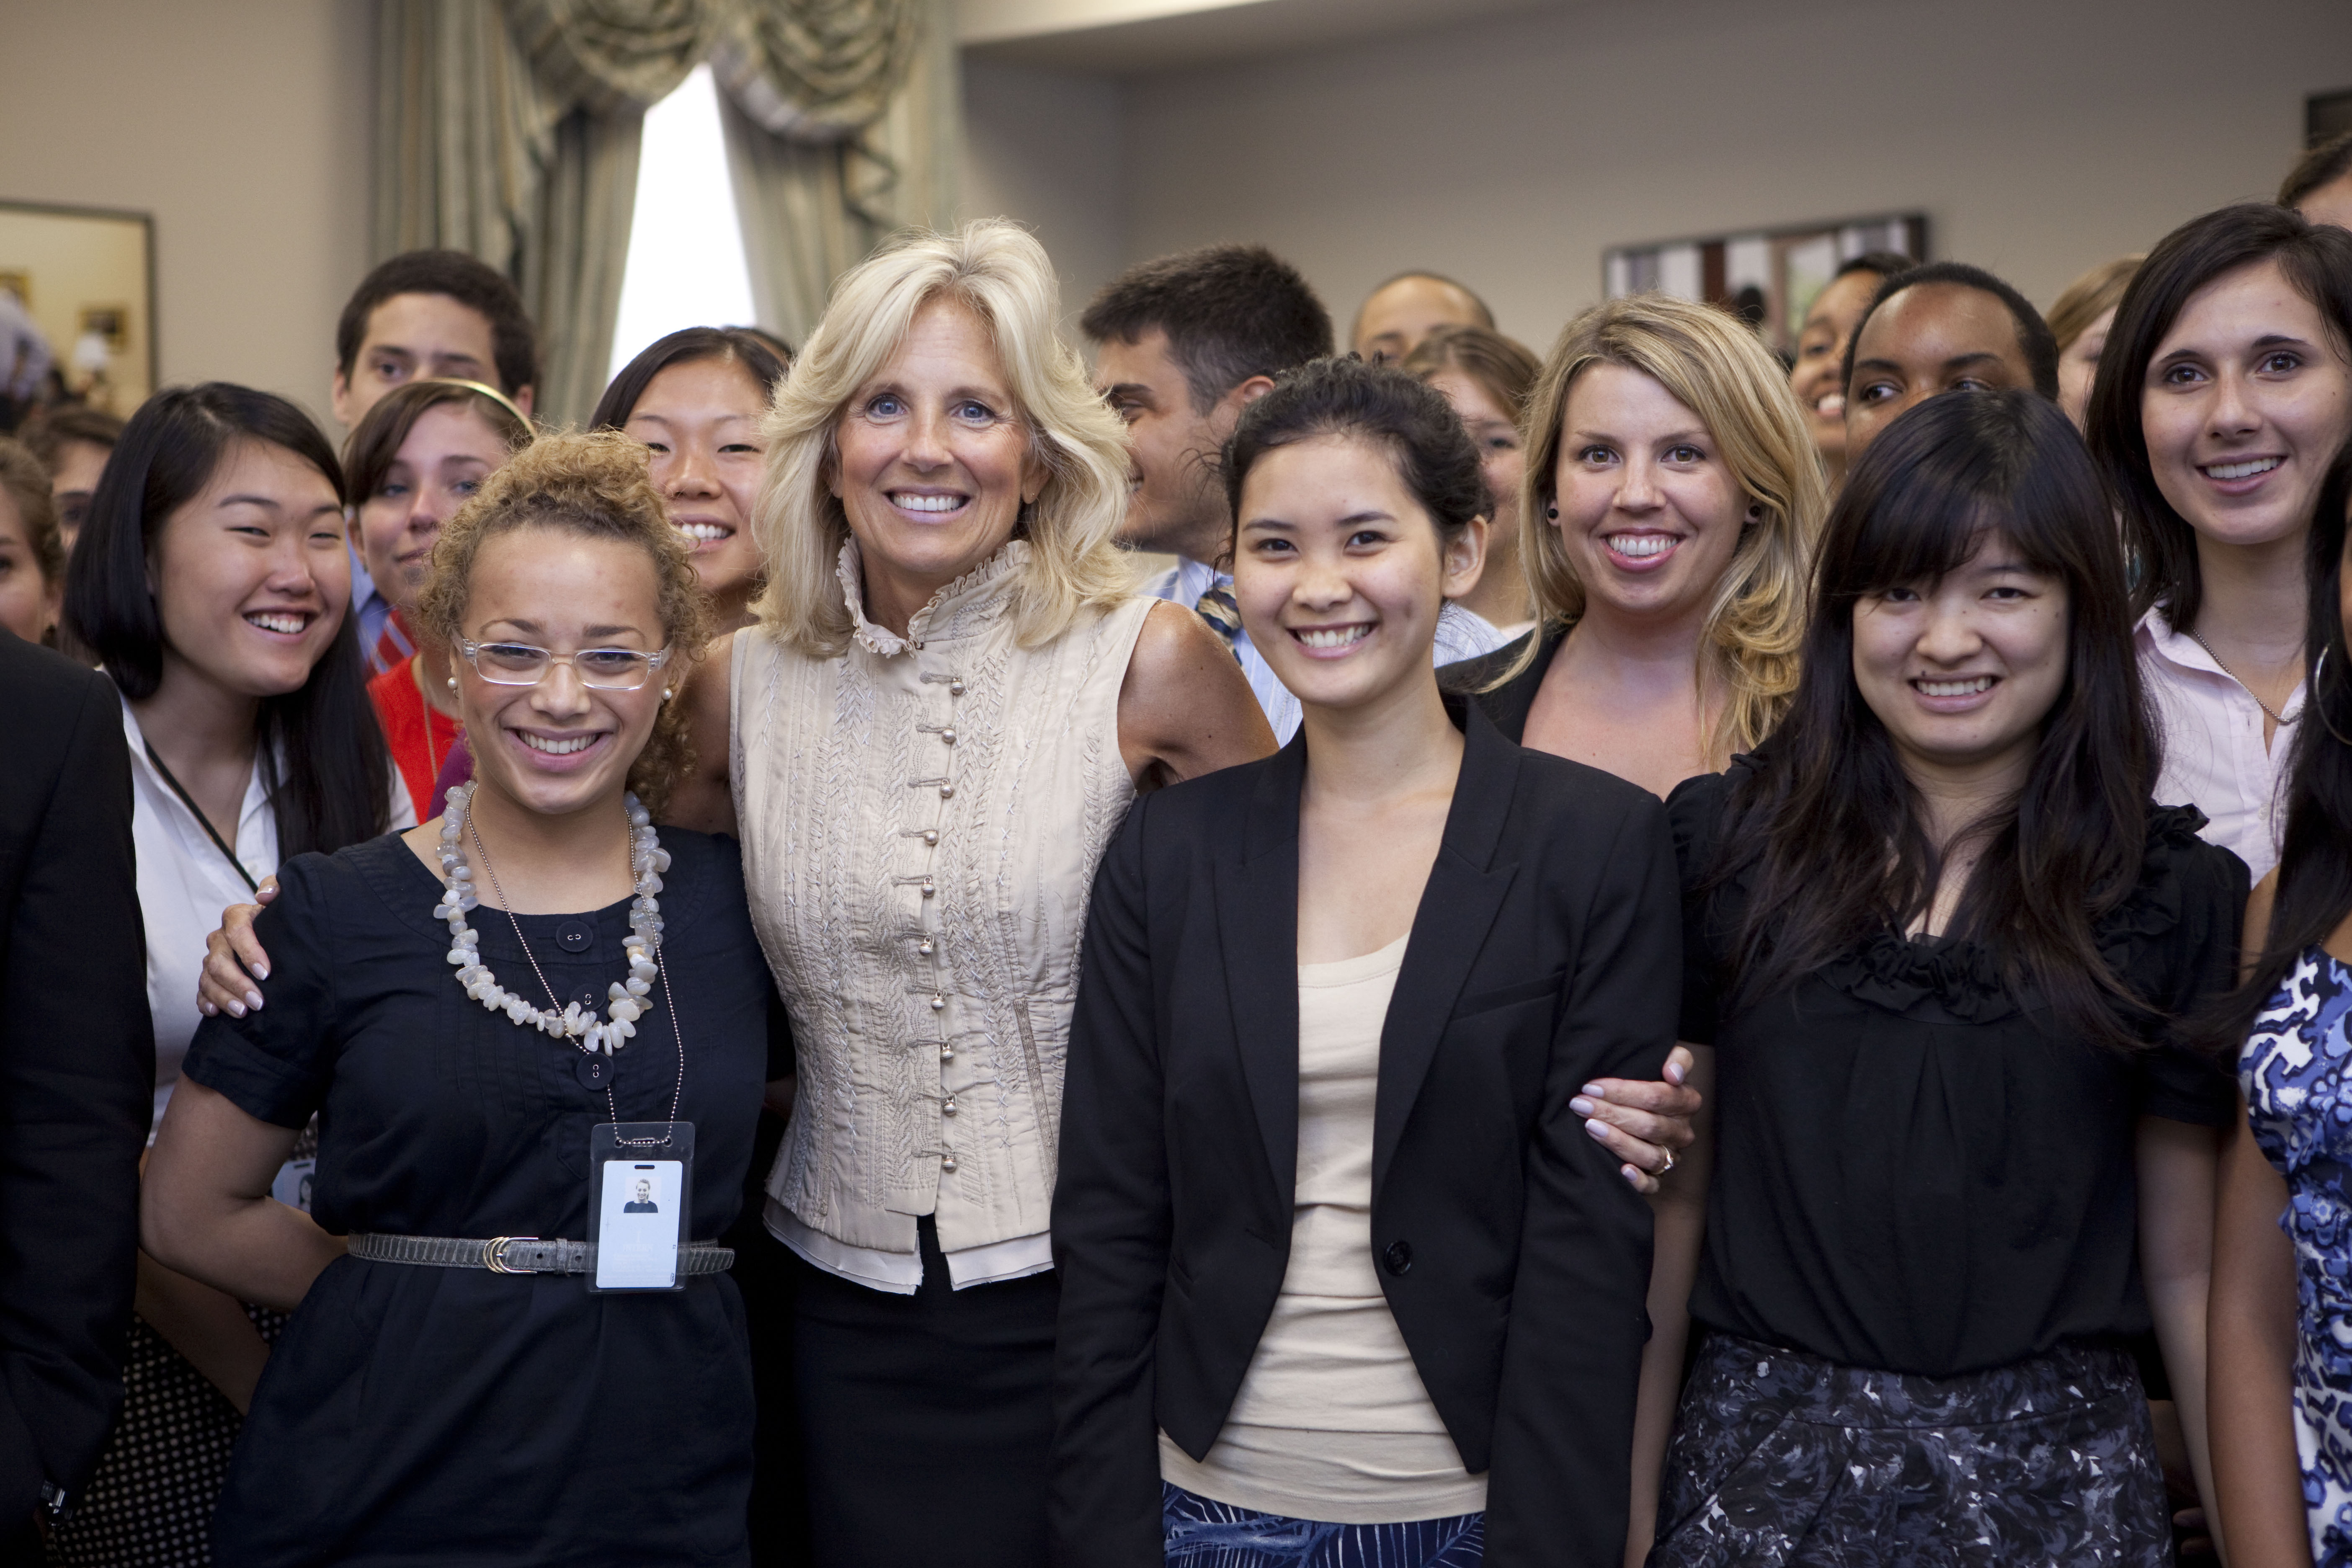 Dr. Biden with White House Interns